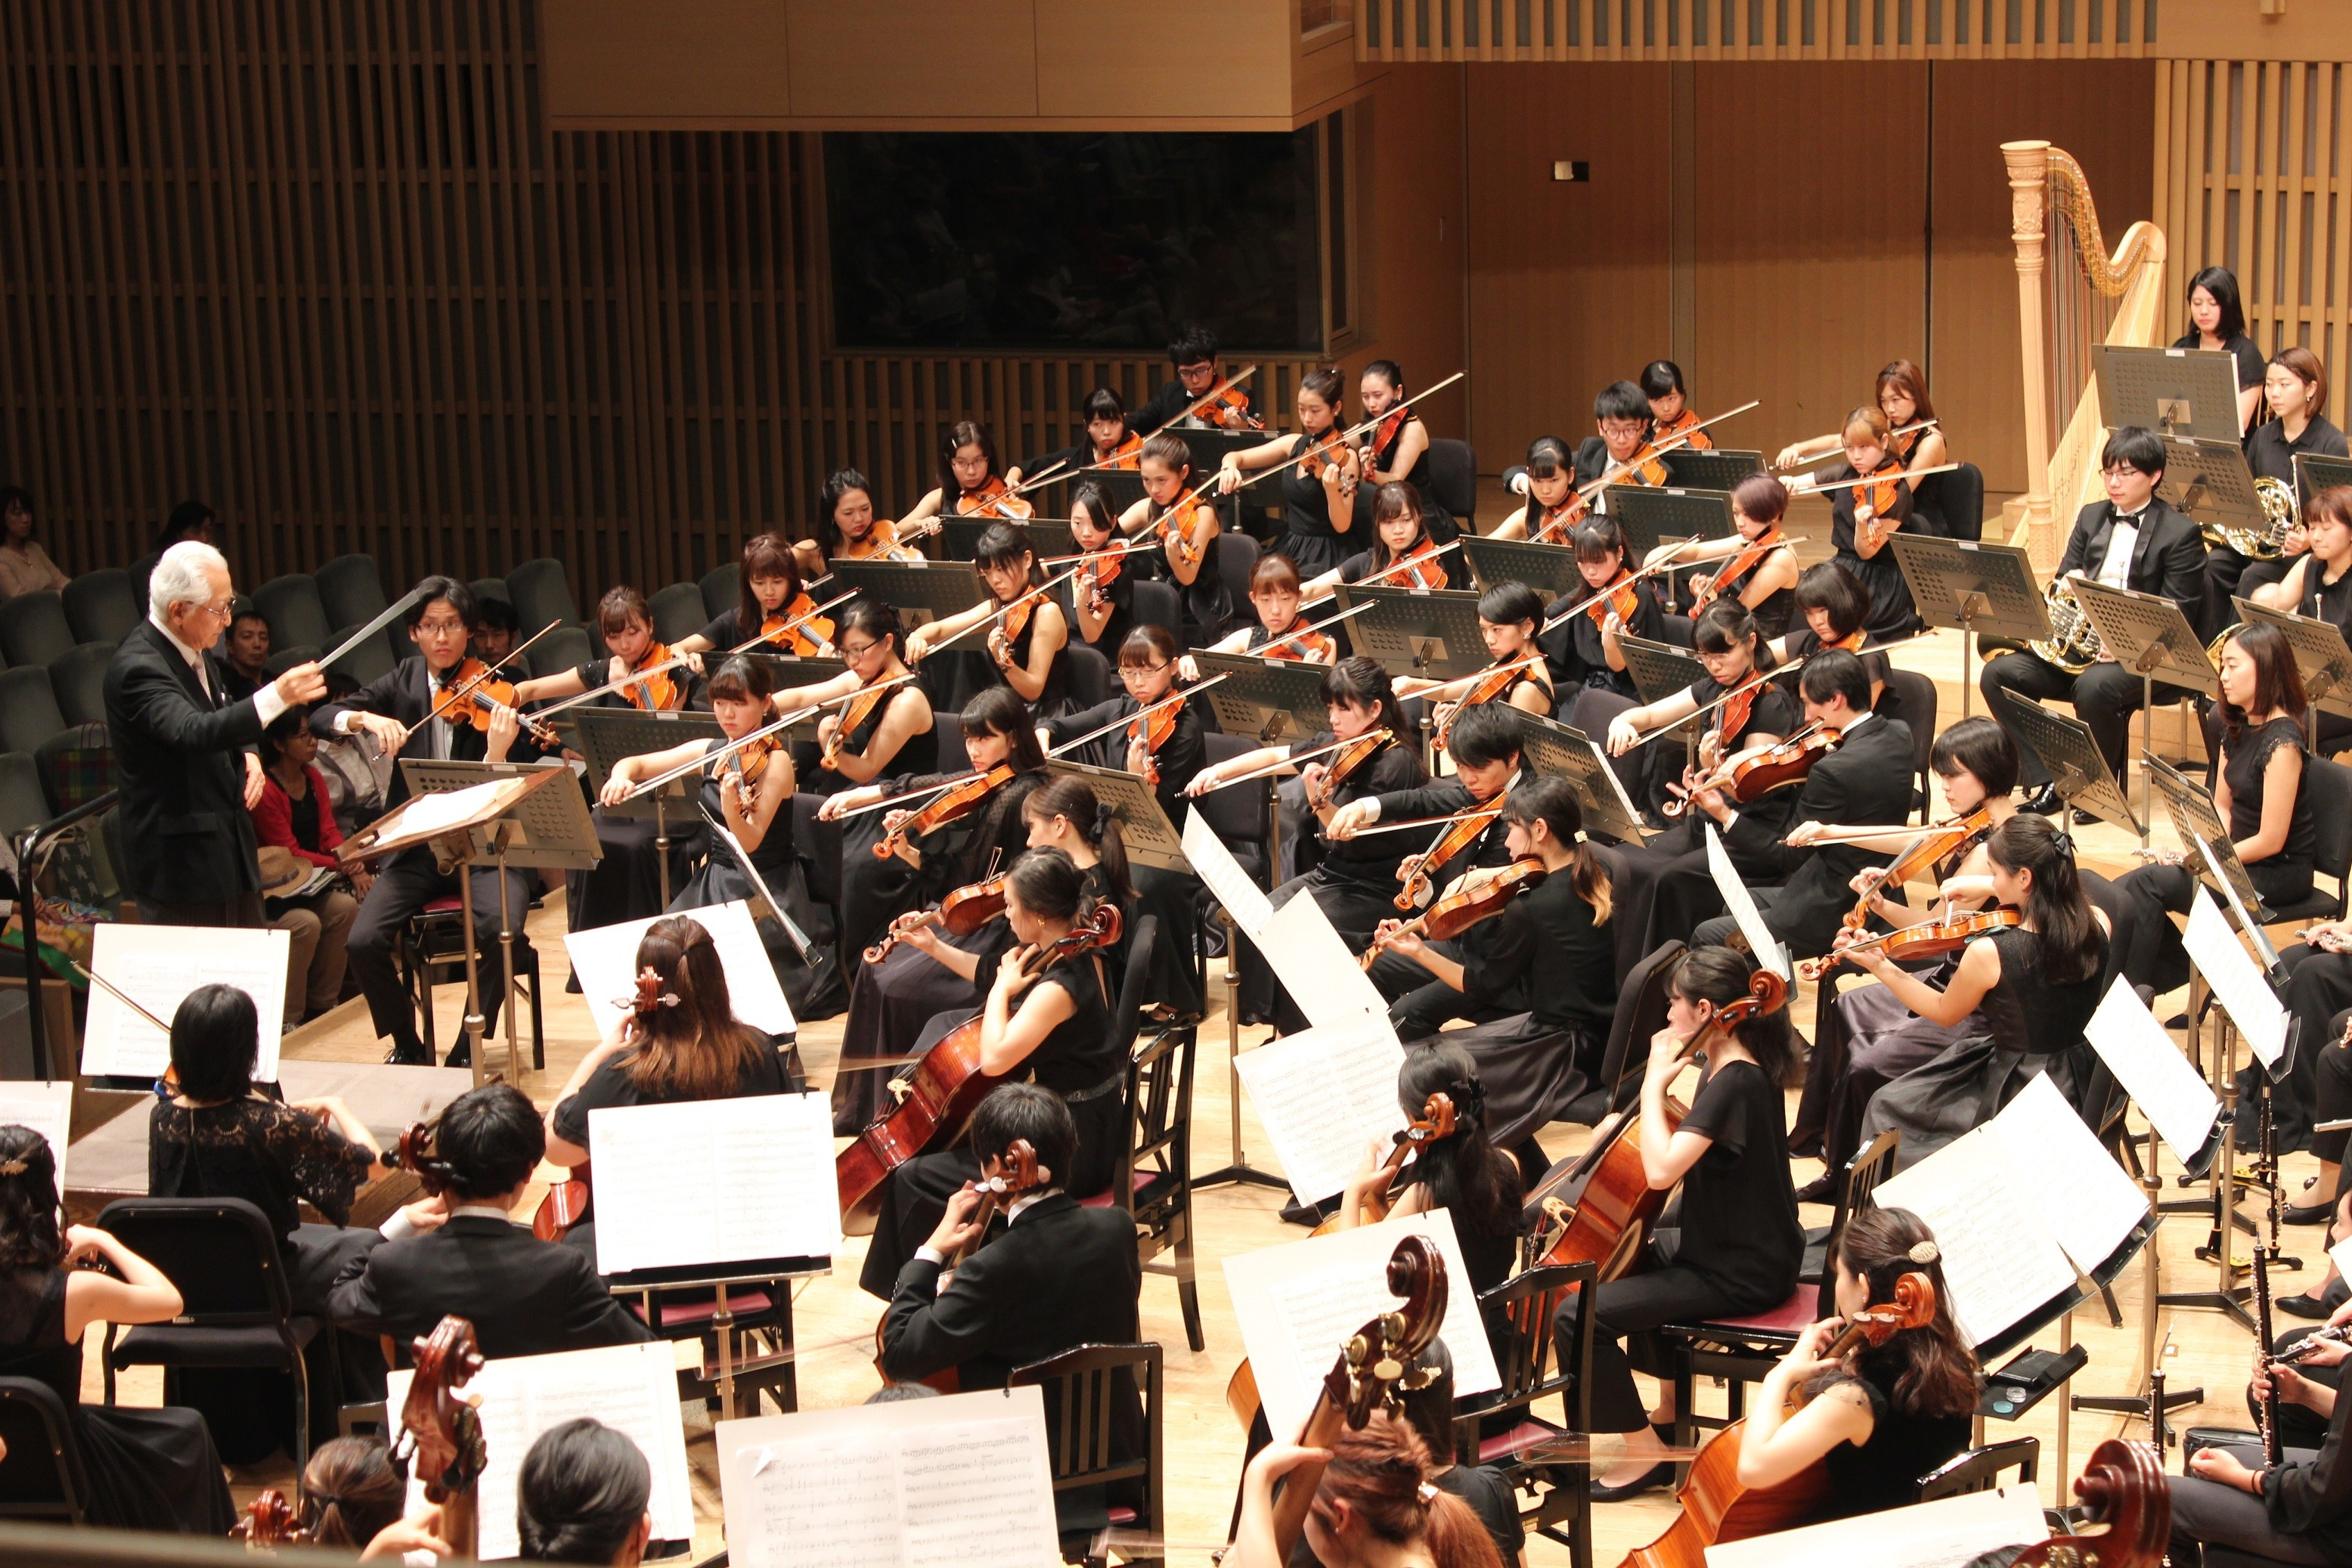 The 9th Orchestral Festival for Music Colleges and Universities of Performing Arts in Kansai in Kyoto Concert Hall